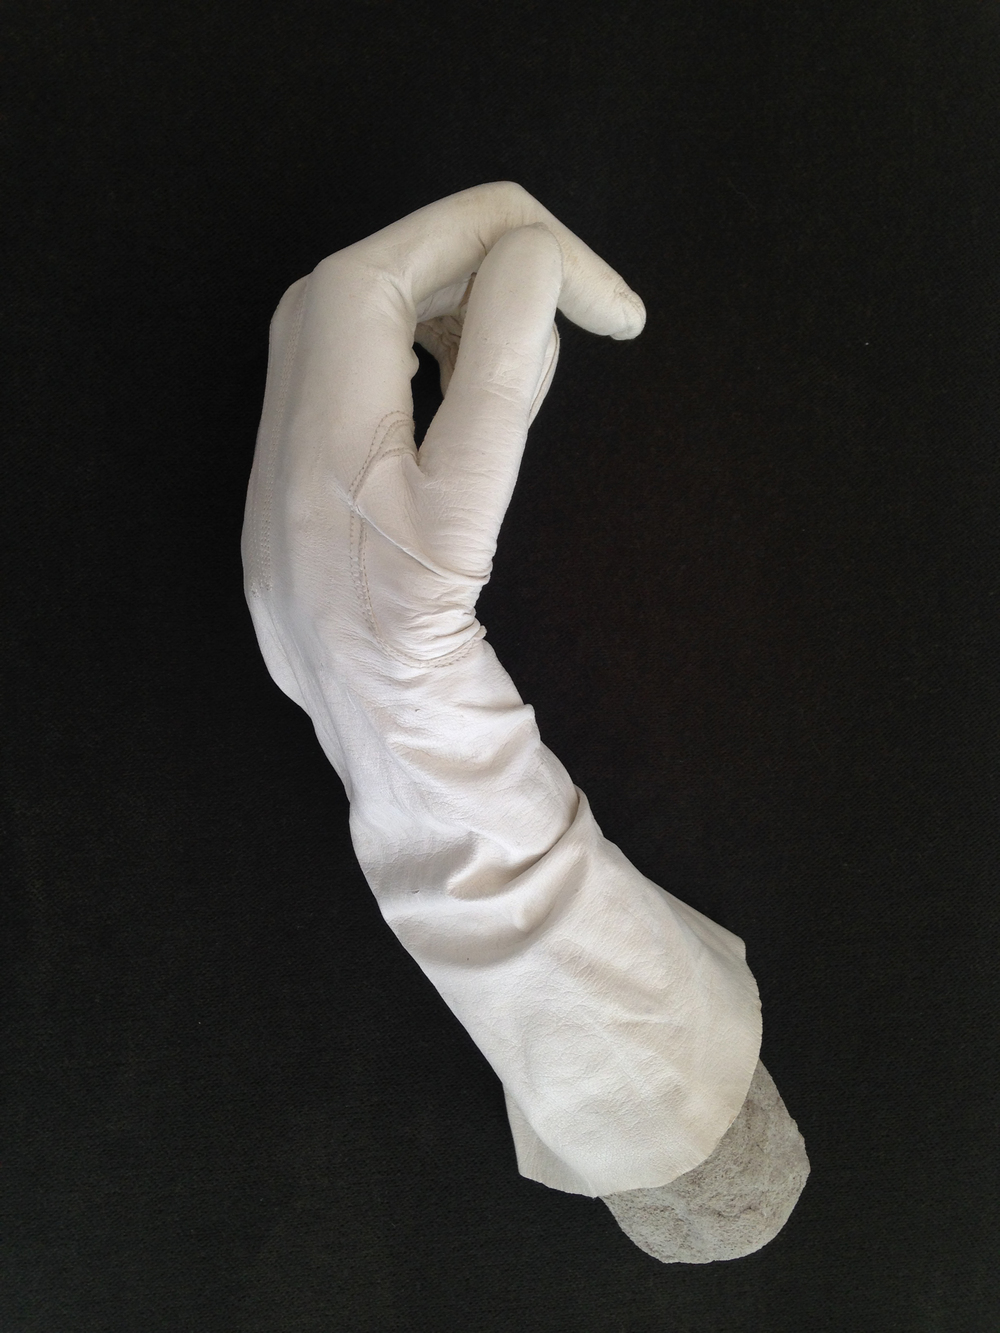 AM, Hllda Doolittle, Man Ray, The Hand and the Glove.jpg